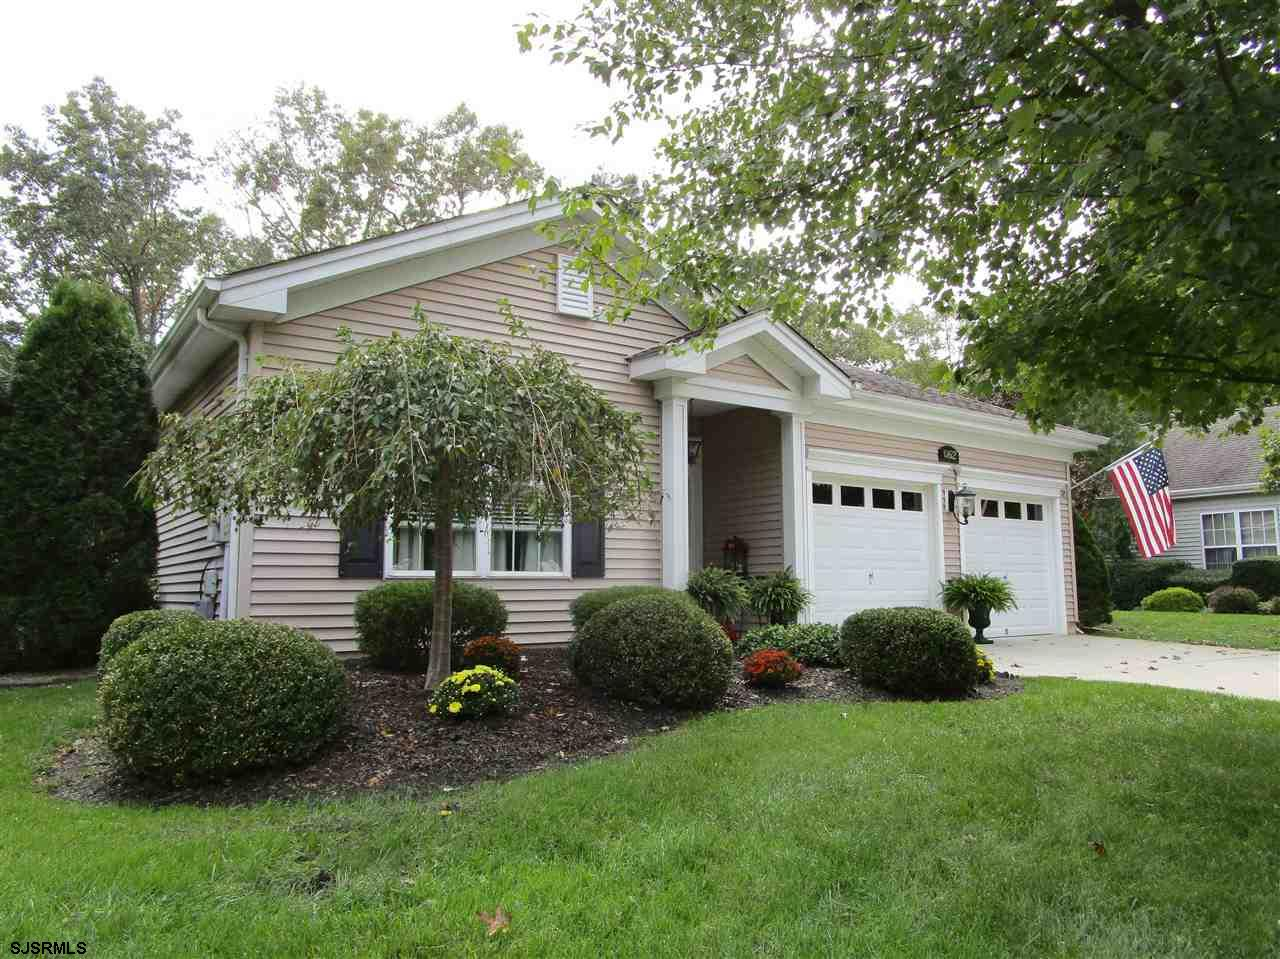 Blue Heron Pines Homes For Sale   Golf Course Homes